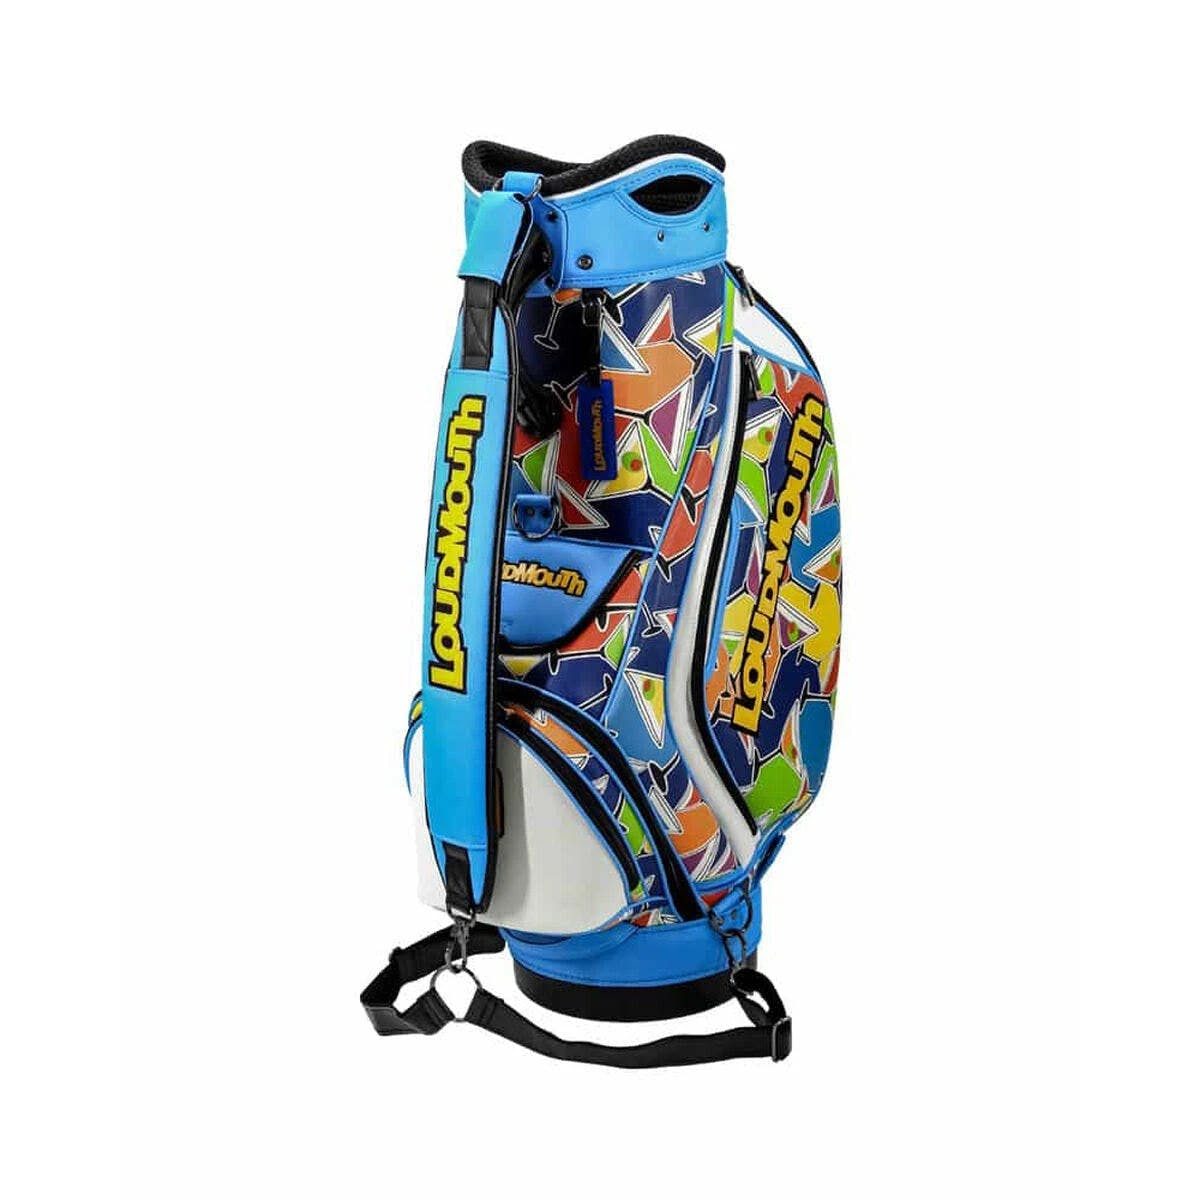 Loudmouth Golf- Cocktail Party Tour Bag